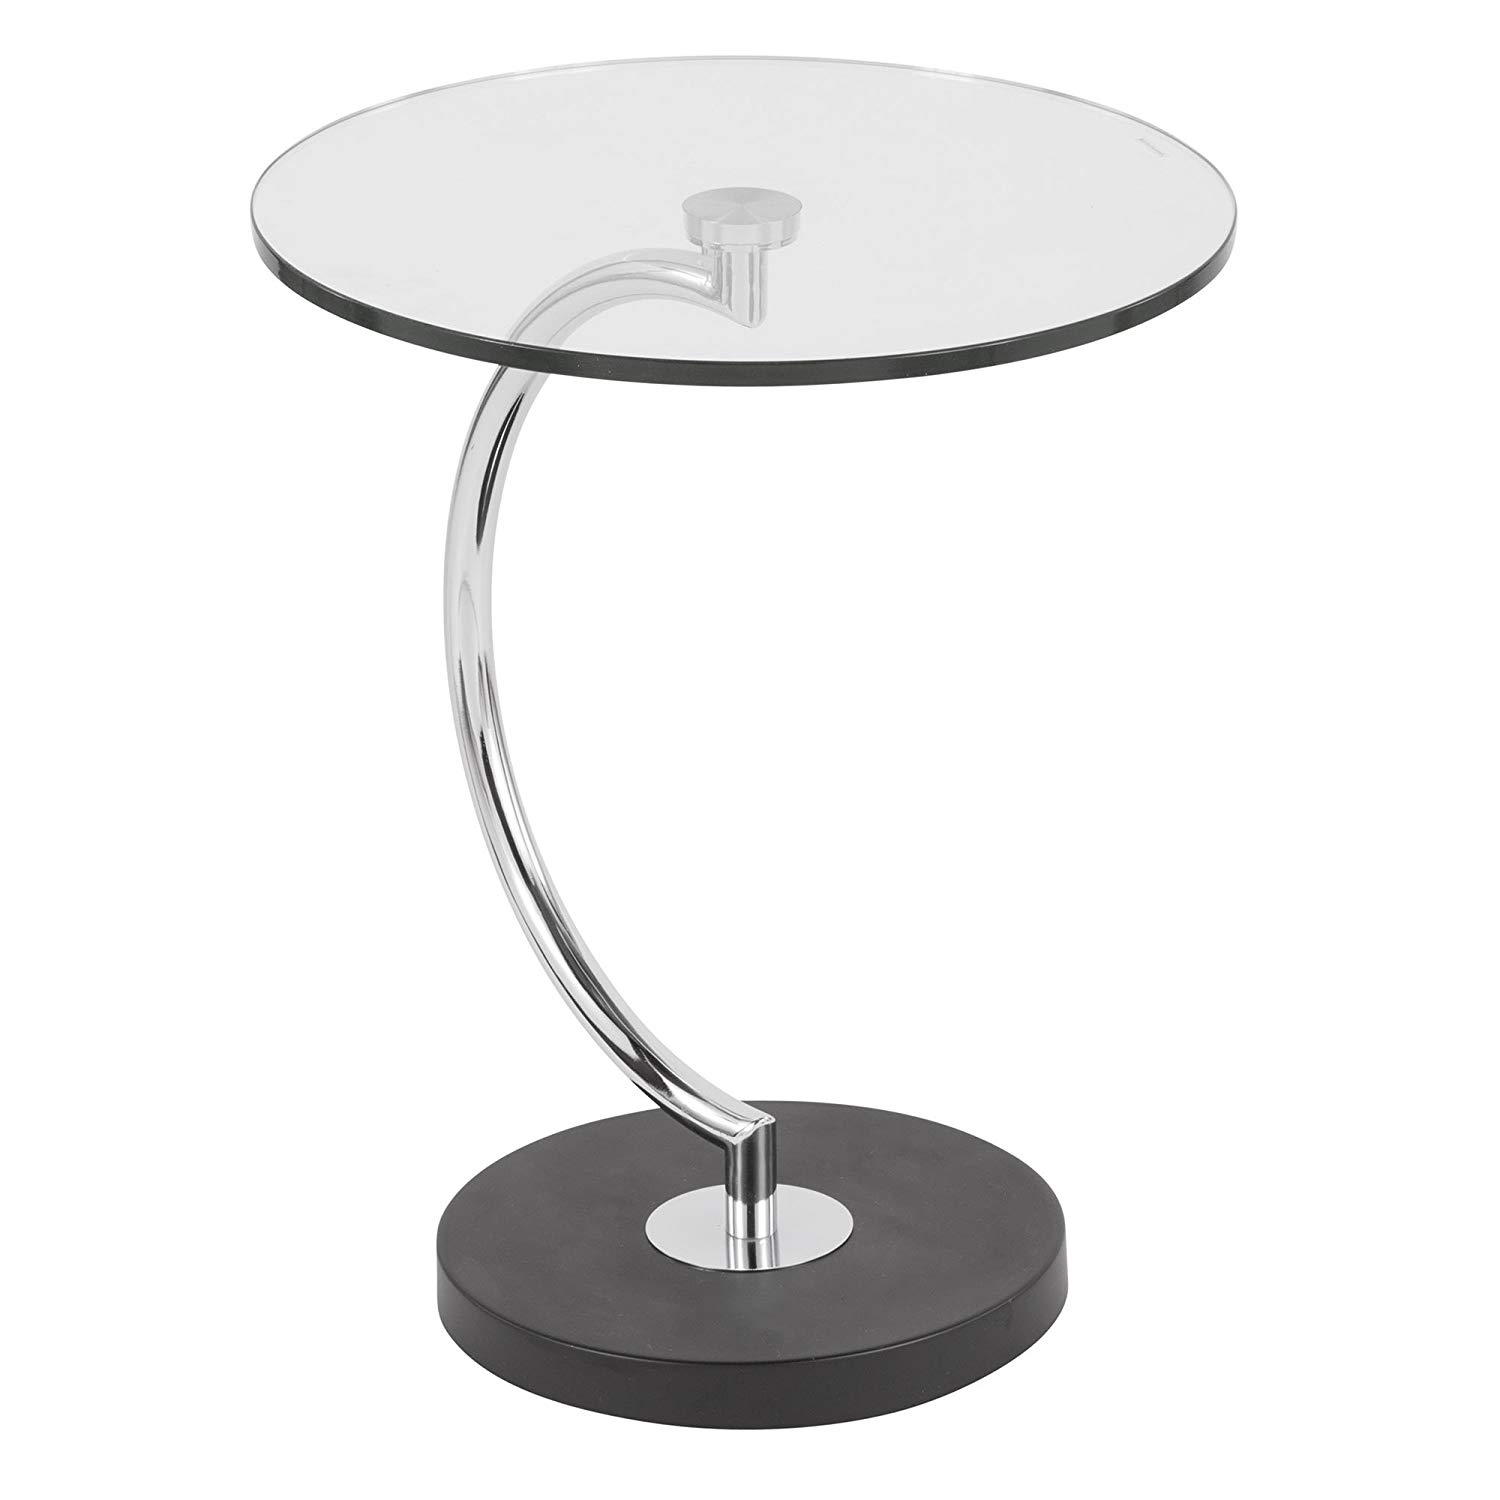 woybr glass chrome marble end table kitchen monarch bentwood accent with tempered dining threshold two drawer sams patio furniture moroccan tile frog rain drum bedroom lamp sets